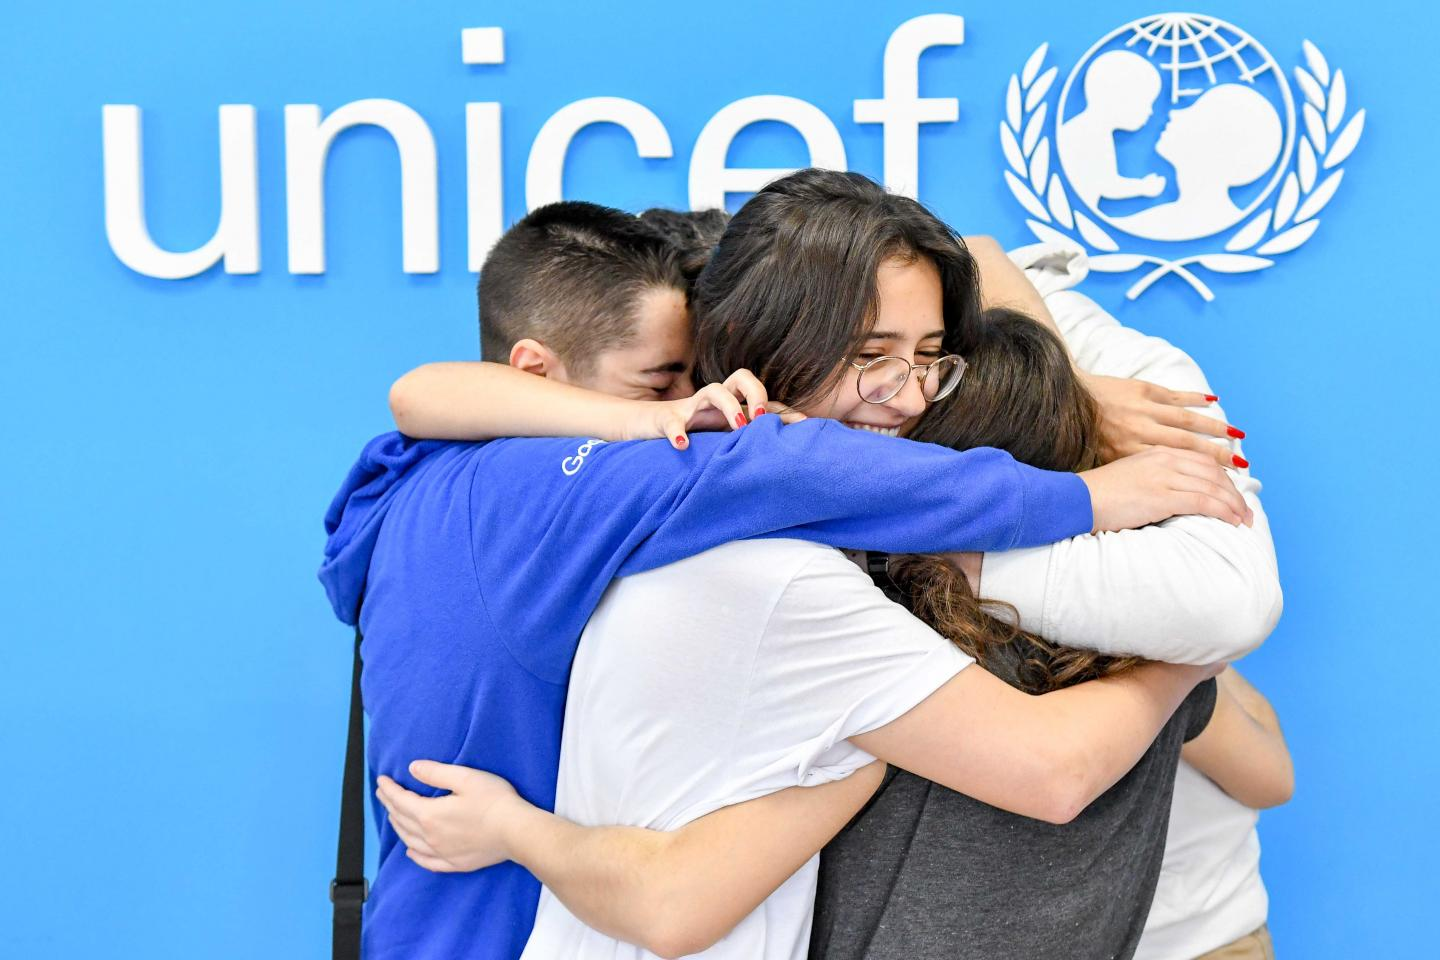 Members of the AndroMeta team in a group hug after realizing that they are among the five winners of the global Generation Unlimited challenge